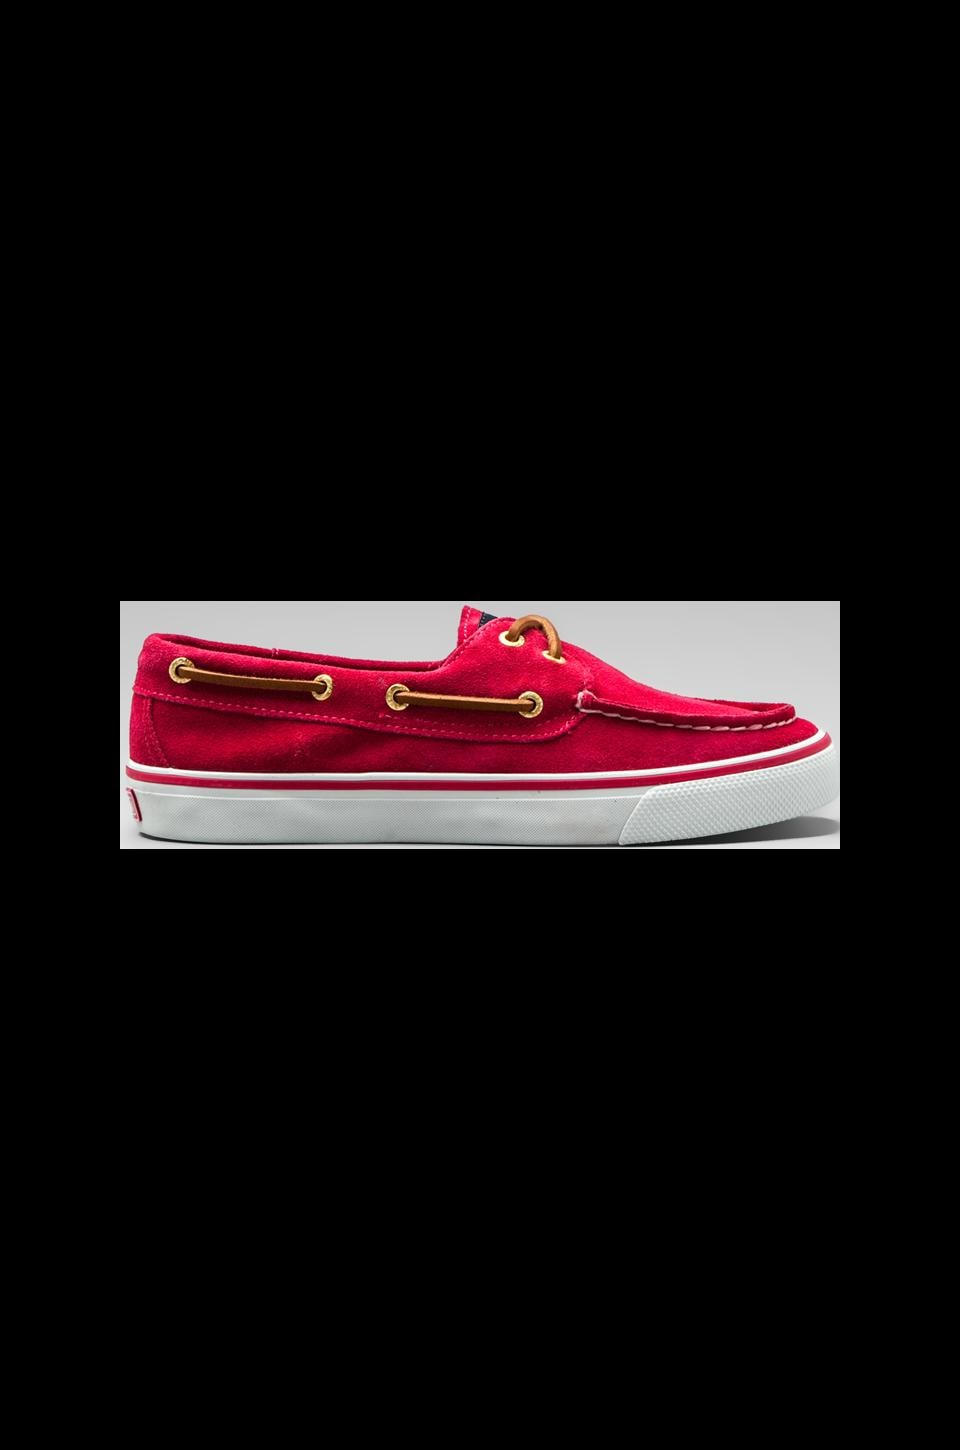 Sperry Top-Sider Bahama 2-Eye in Bright Pink Suede